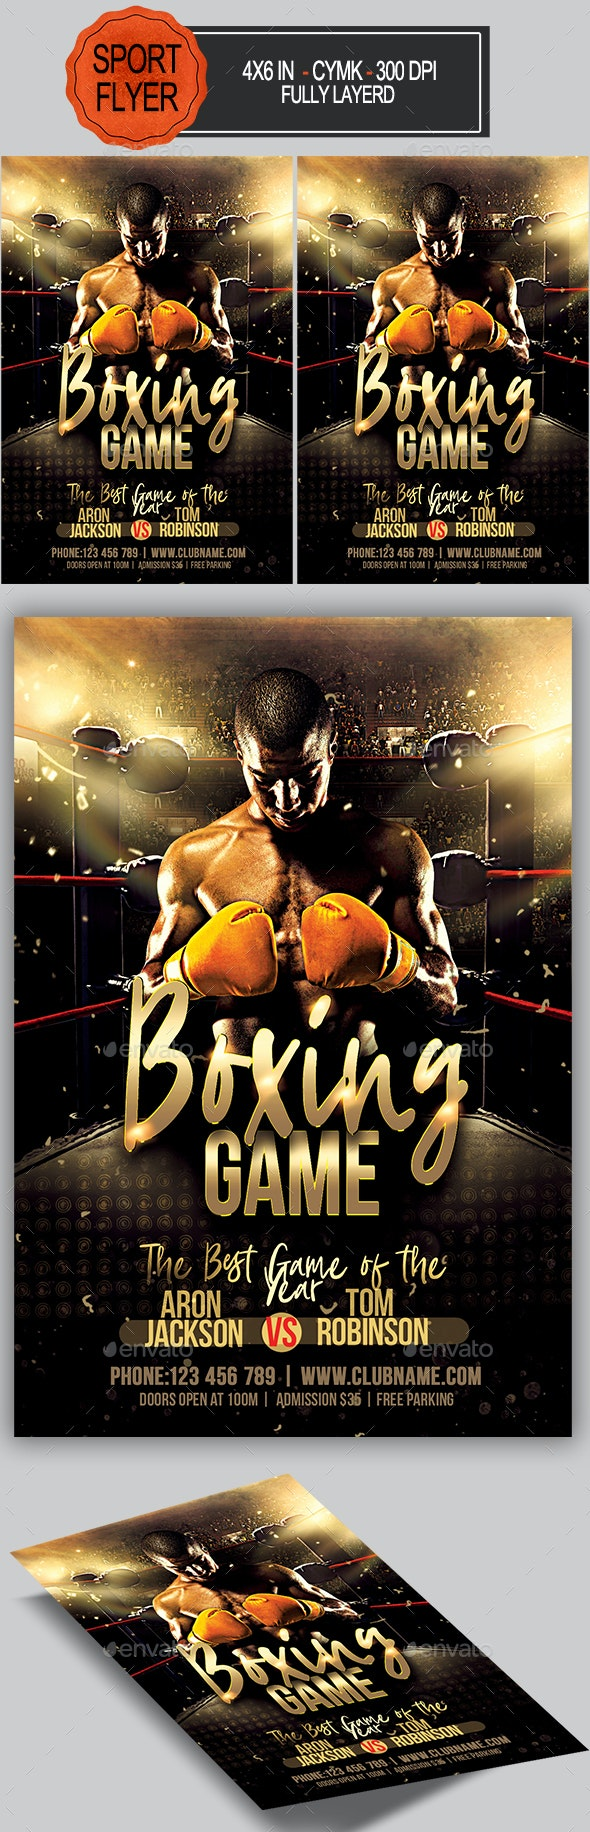 Boxing Game Flyer - Sports Events